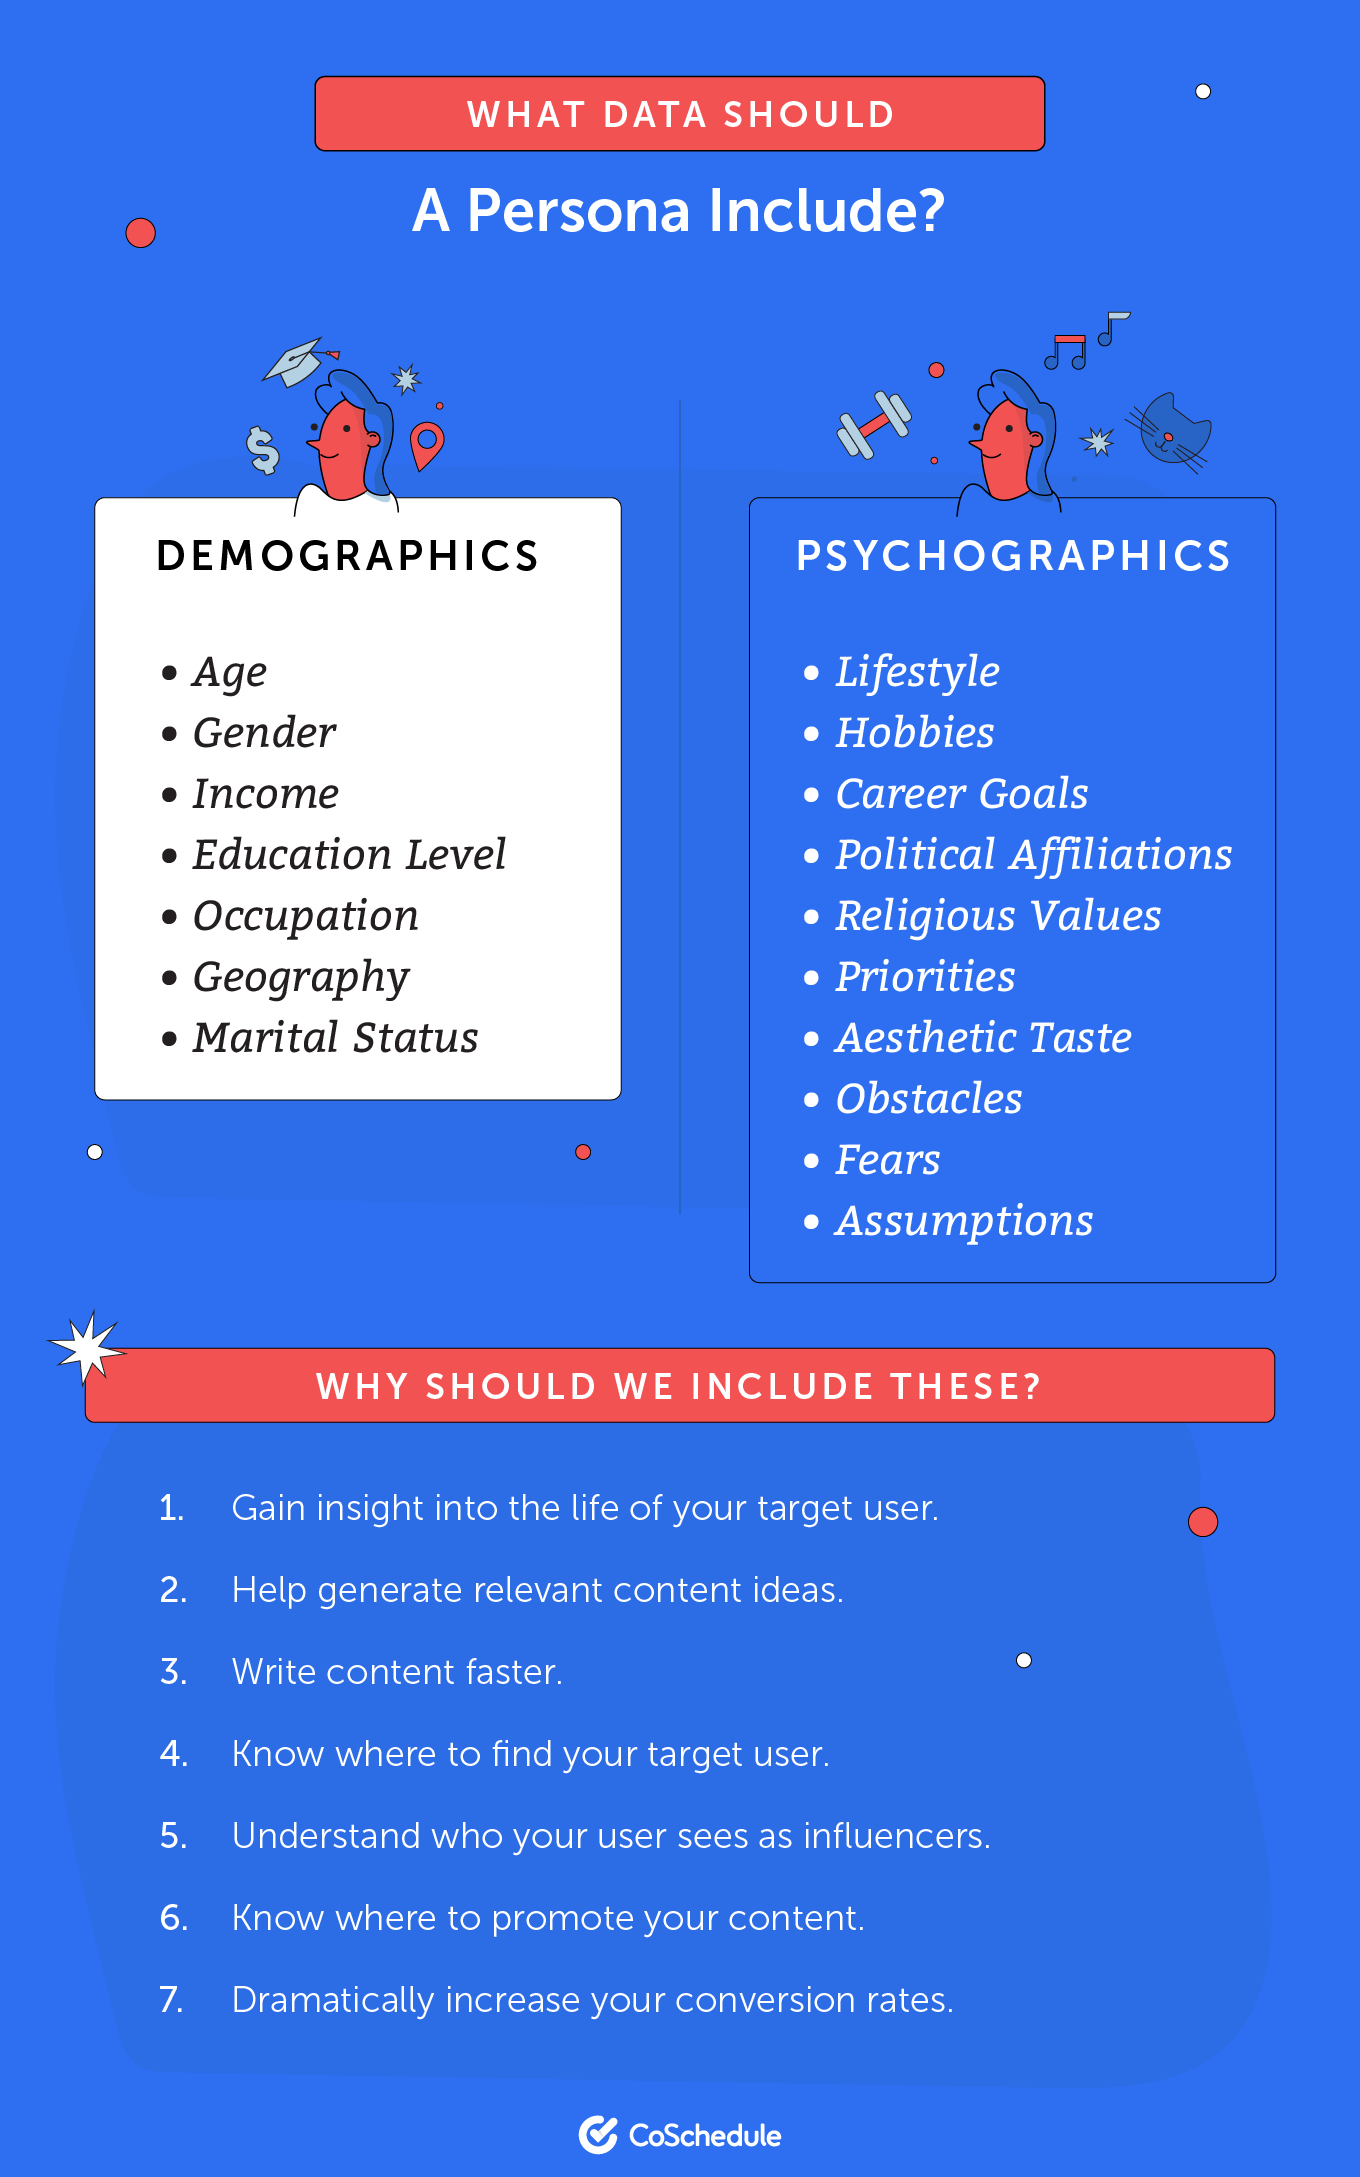 A list about the data your persona should include